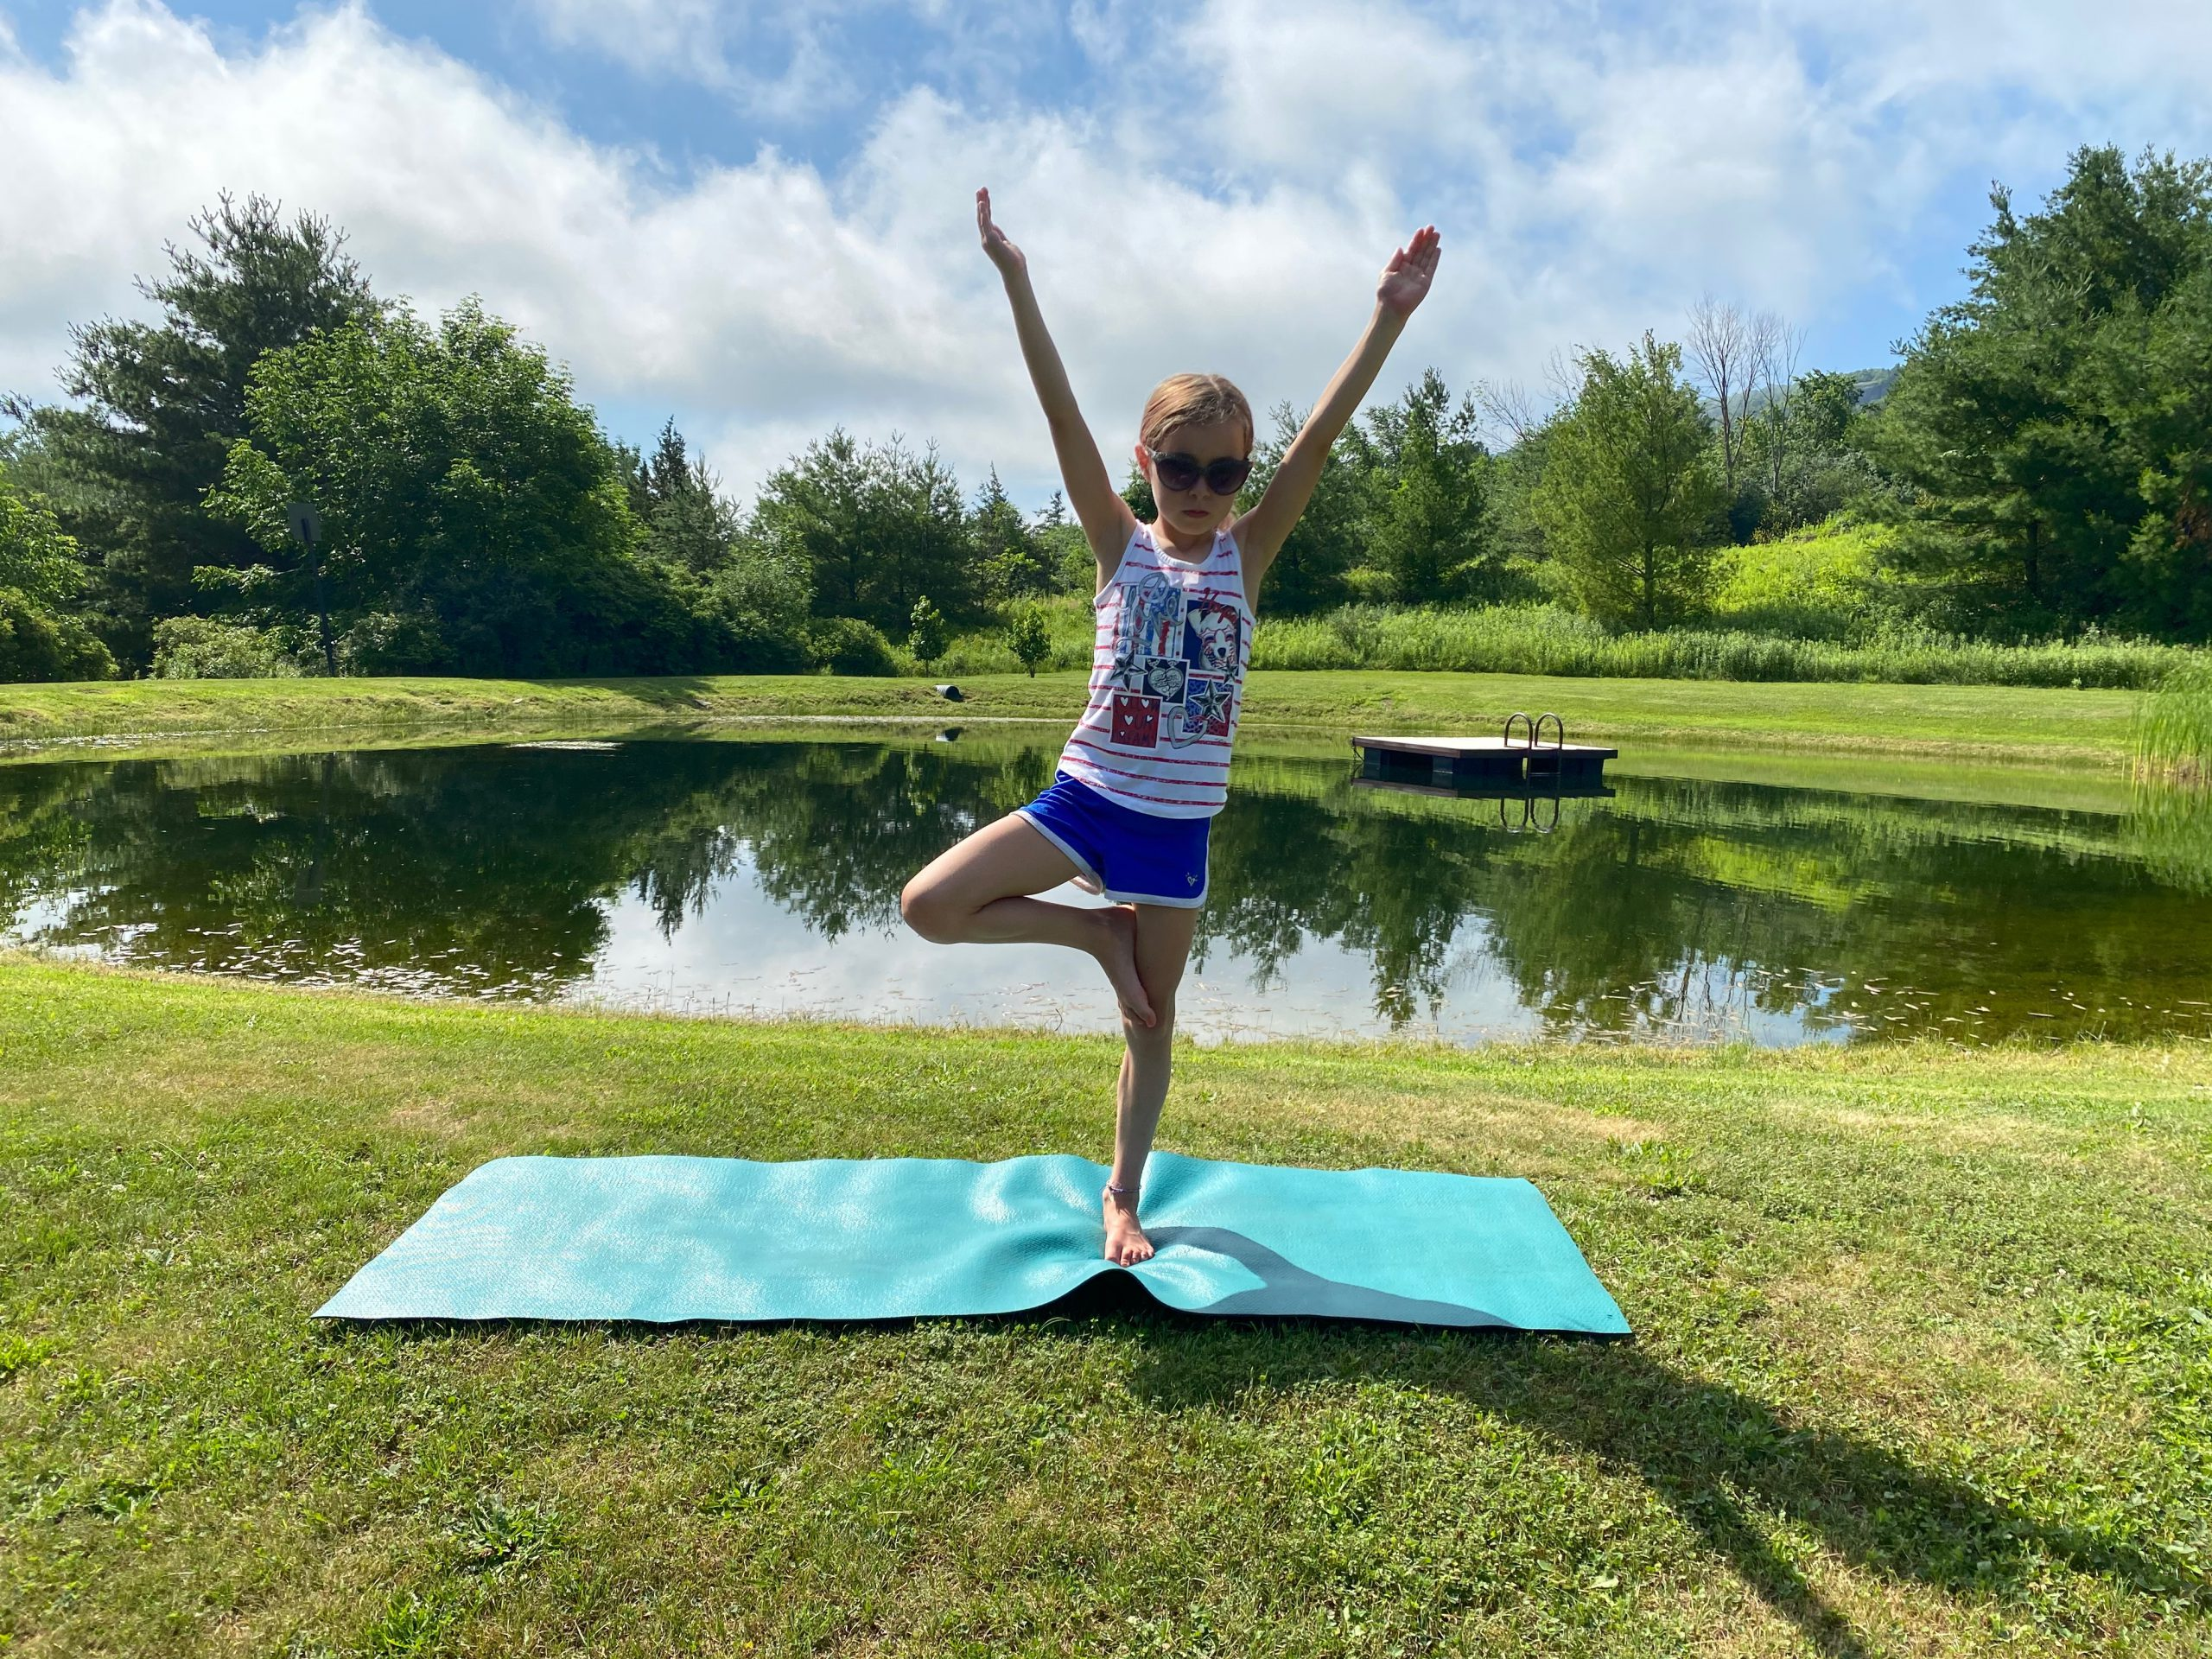 Child stands in tree pose with arms lifted